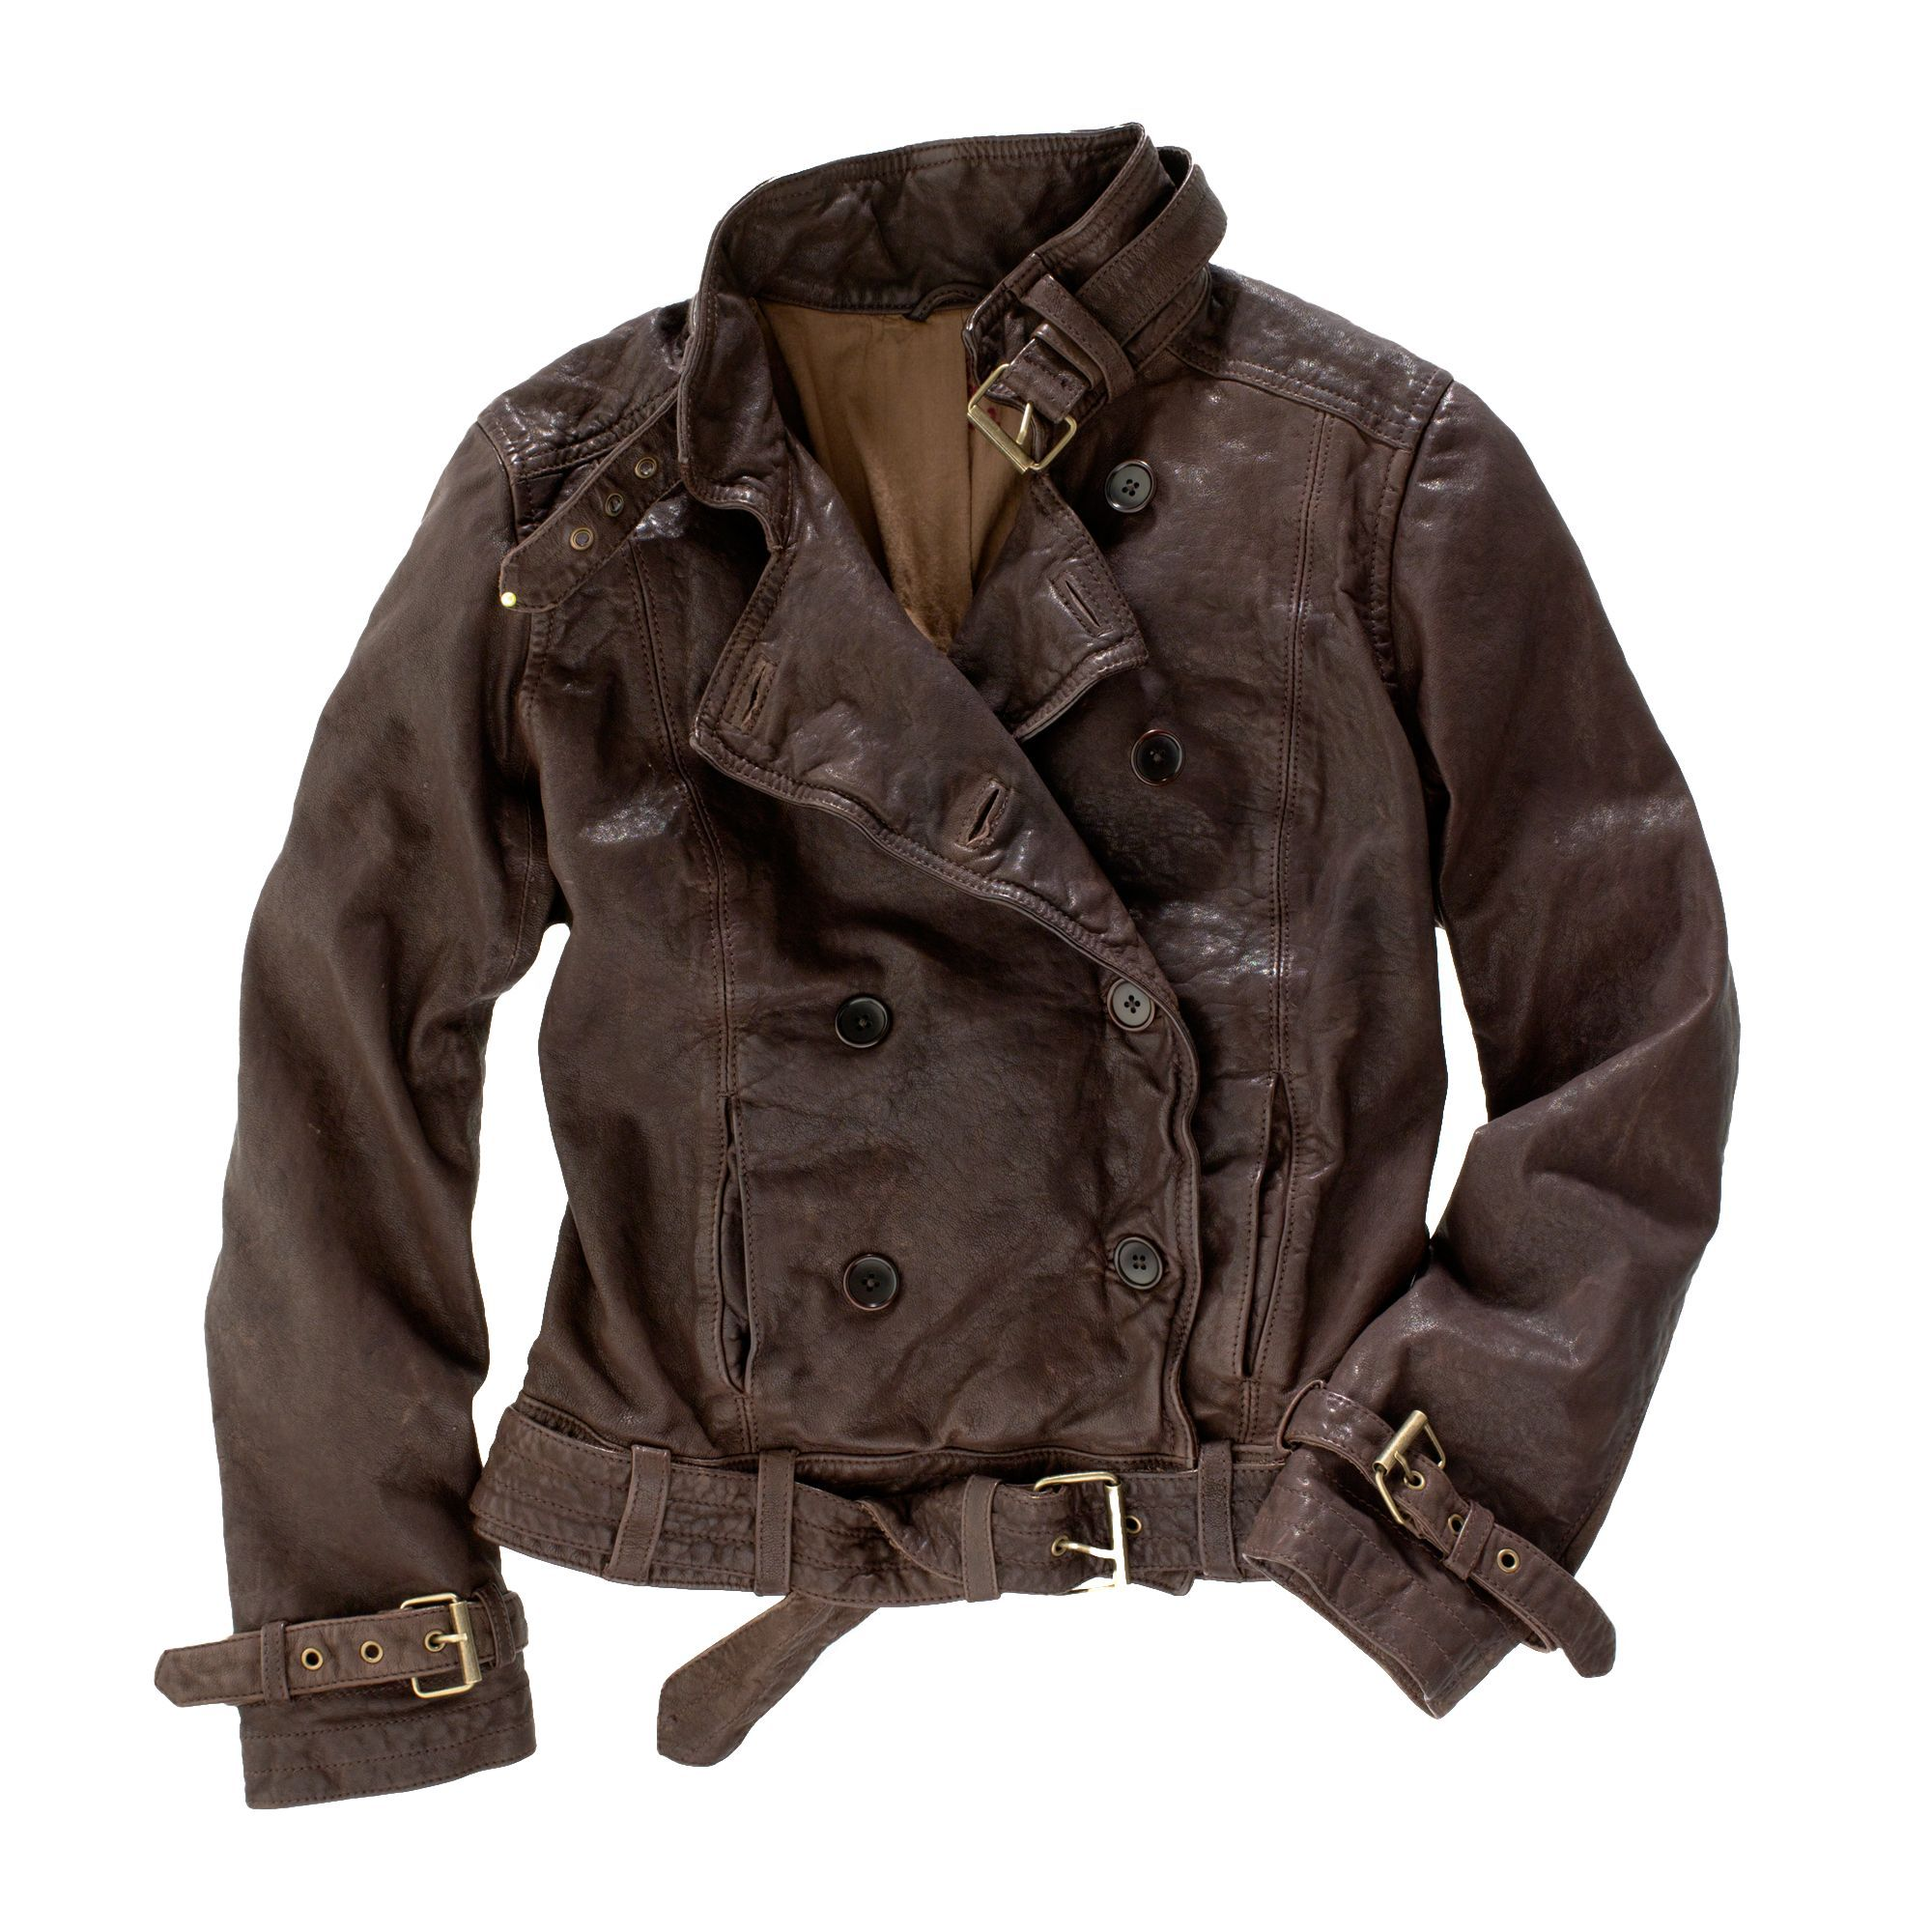 Madewell Belted Leather Bomber in Brown (chocolate raisin